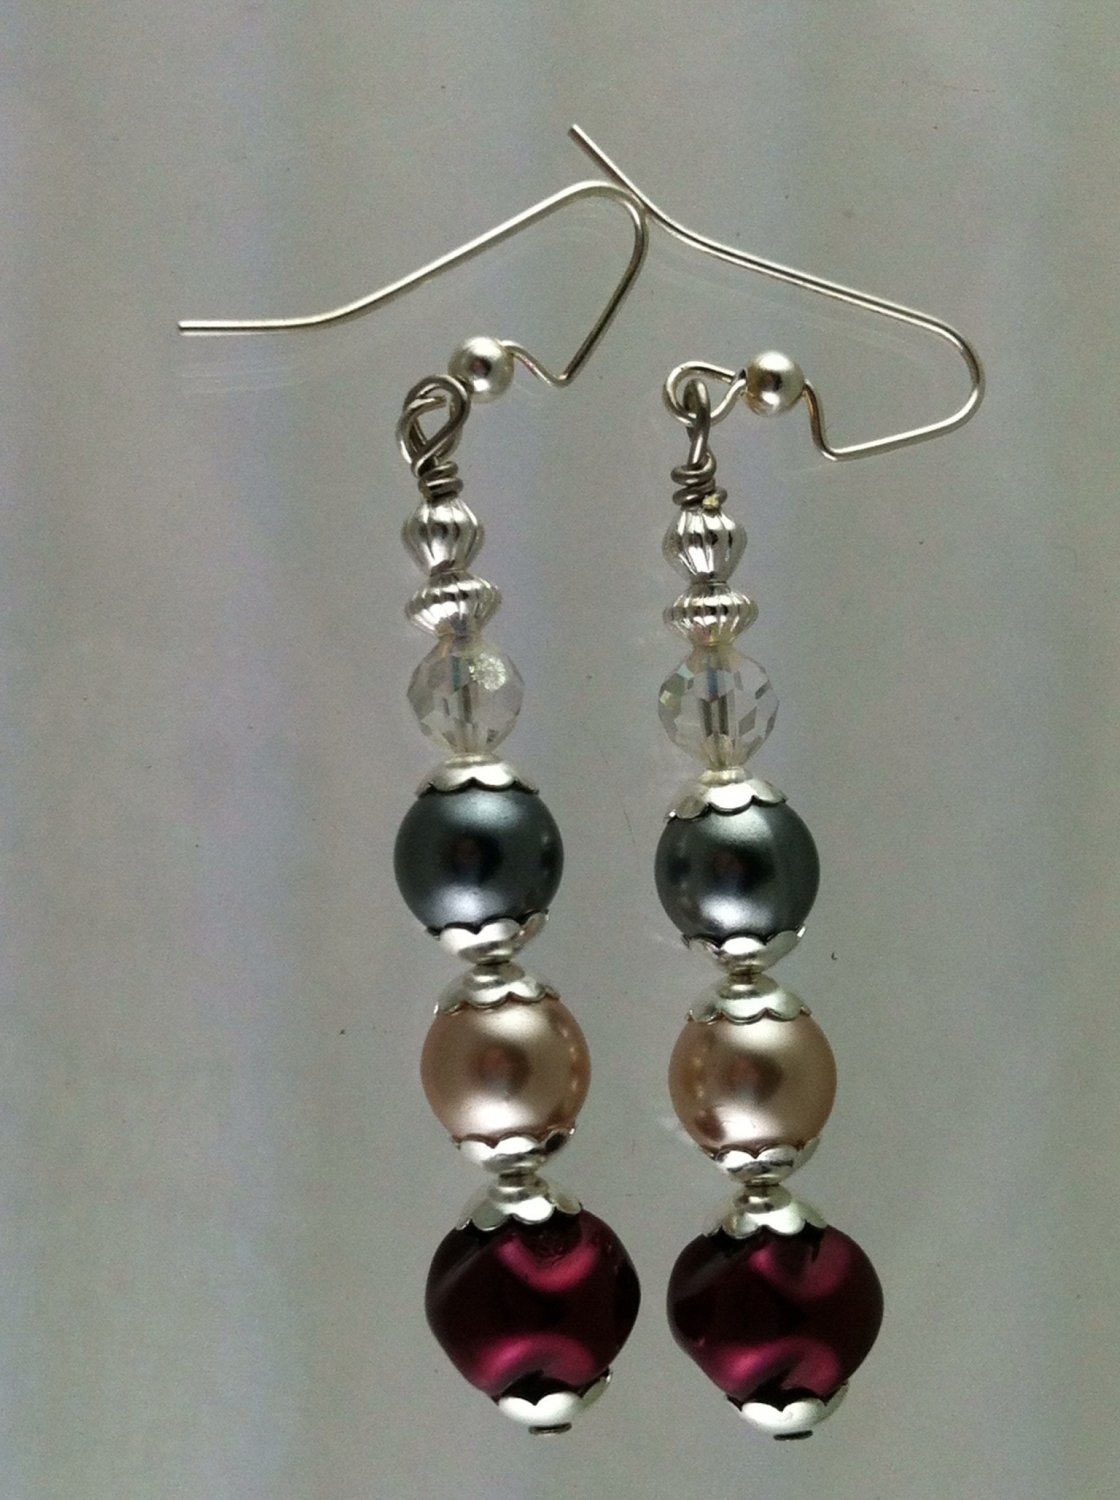 Silver with Burgandy, Cream, Dark Gray Glass Pearls Earrings